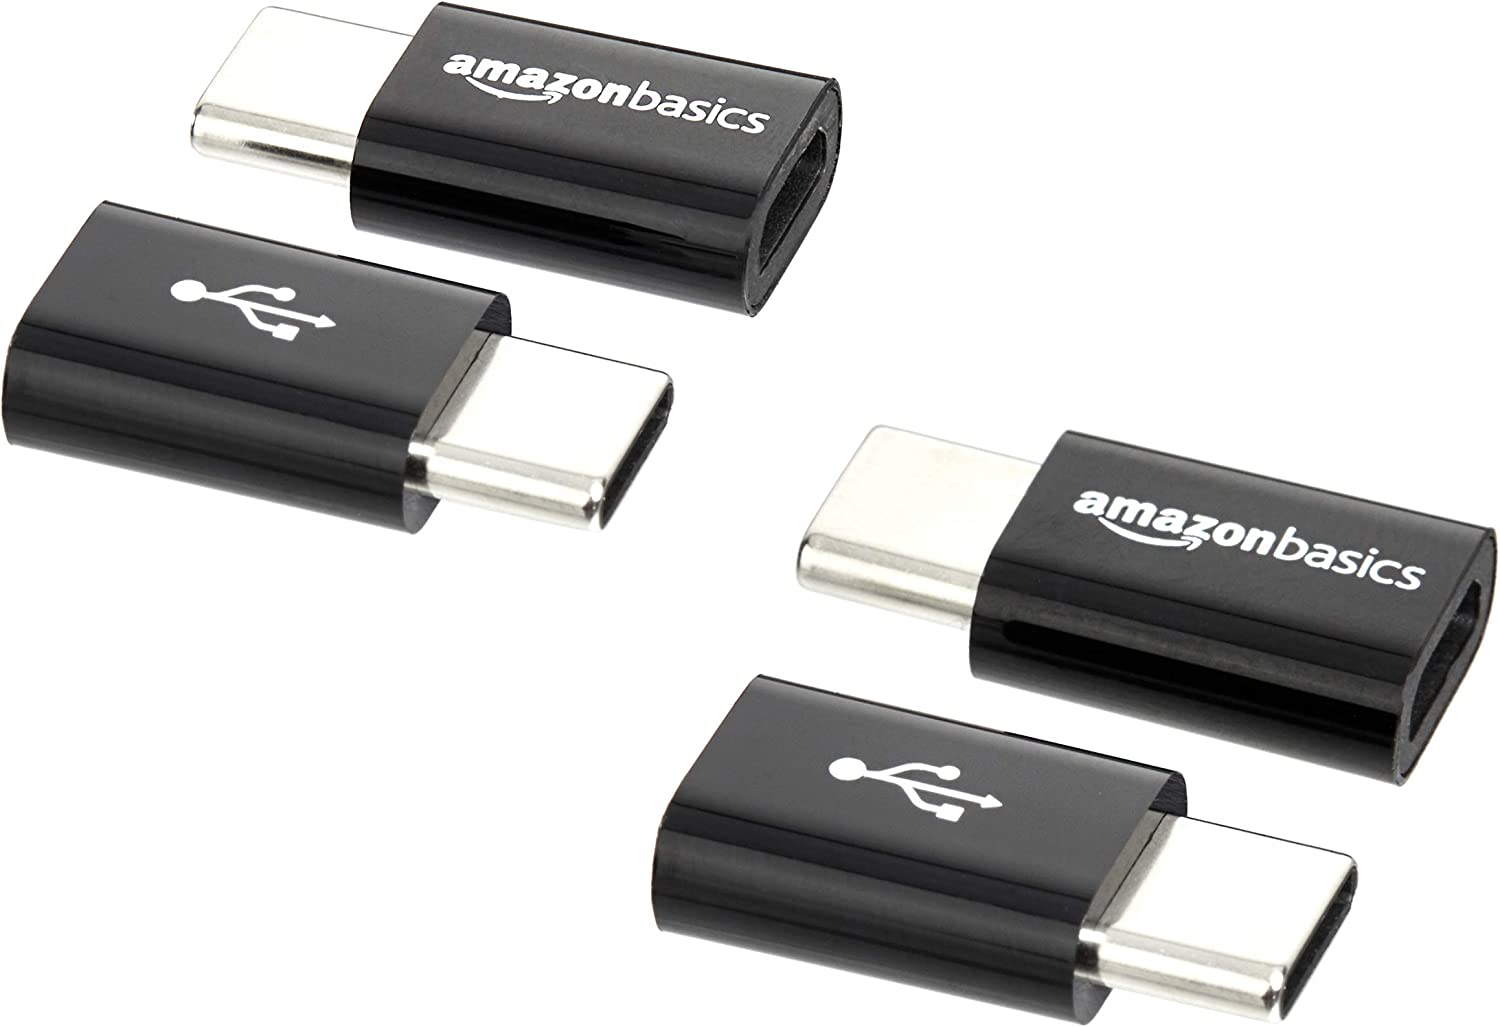 AmazonBasics Micro USB (Female) to USB-C (Male) Adapter - Black, 4-Pack